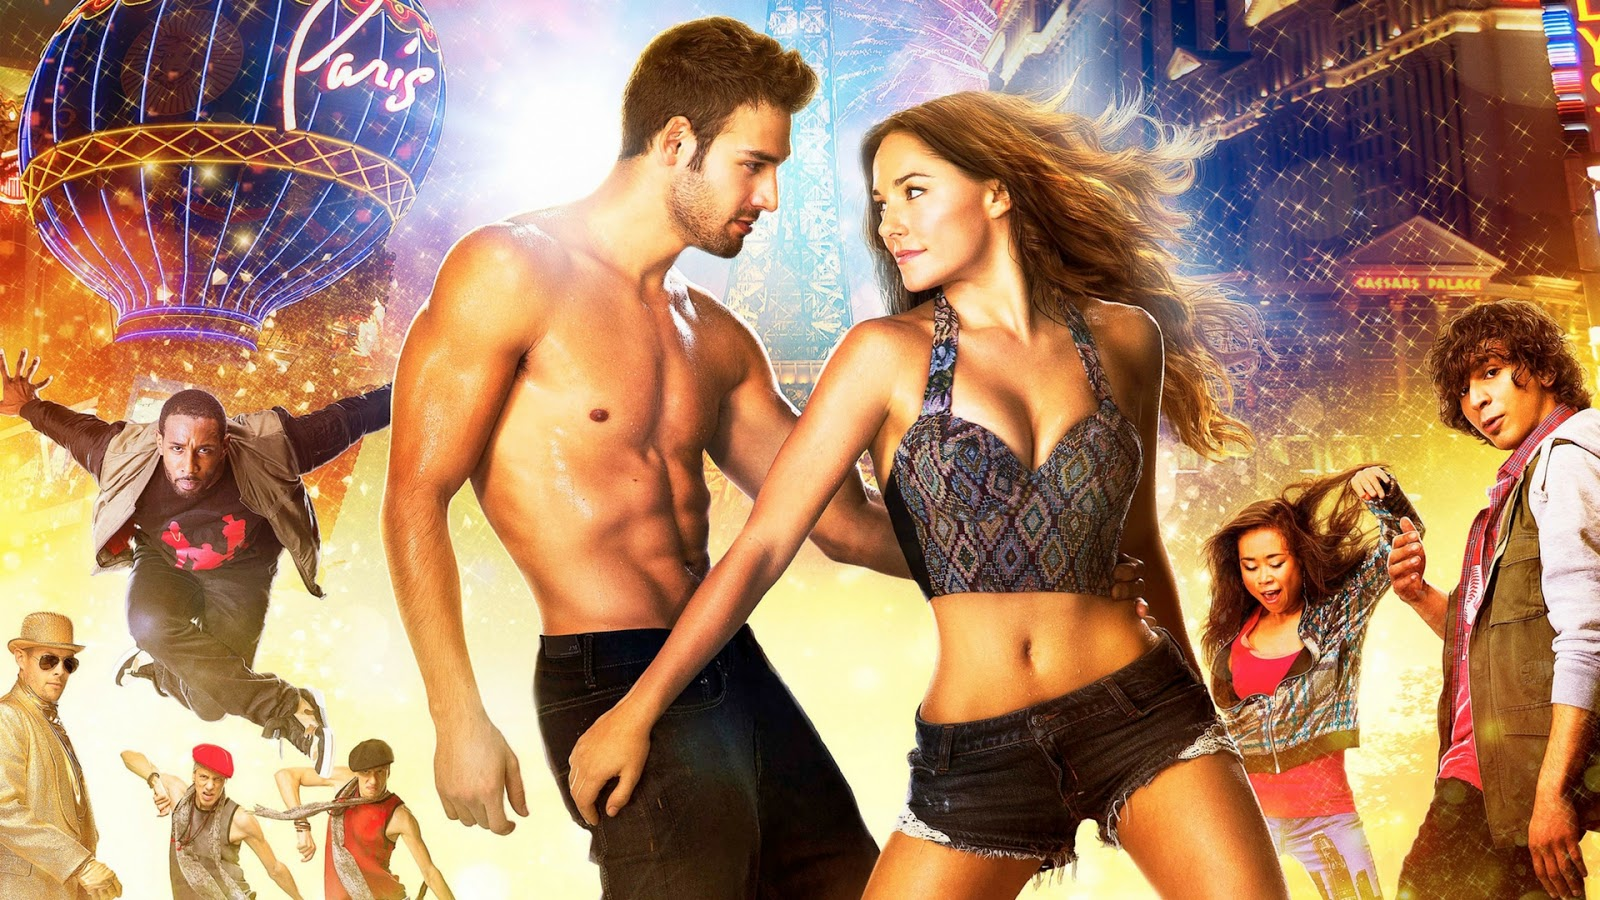 favourite, movies, step up, dance, street dance, panasonic, ryan guzman, la, miami